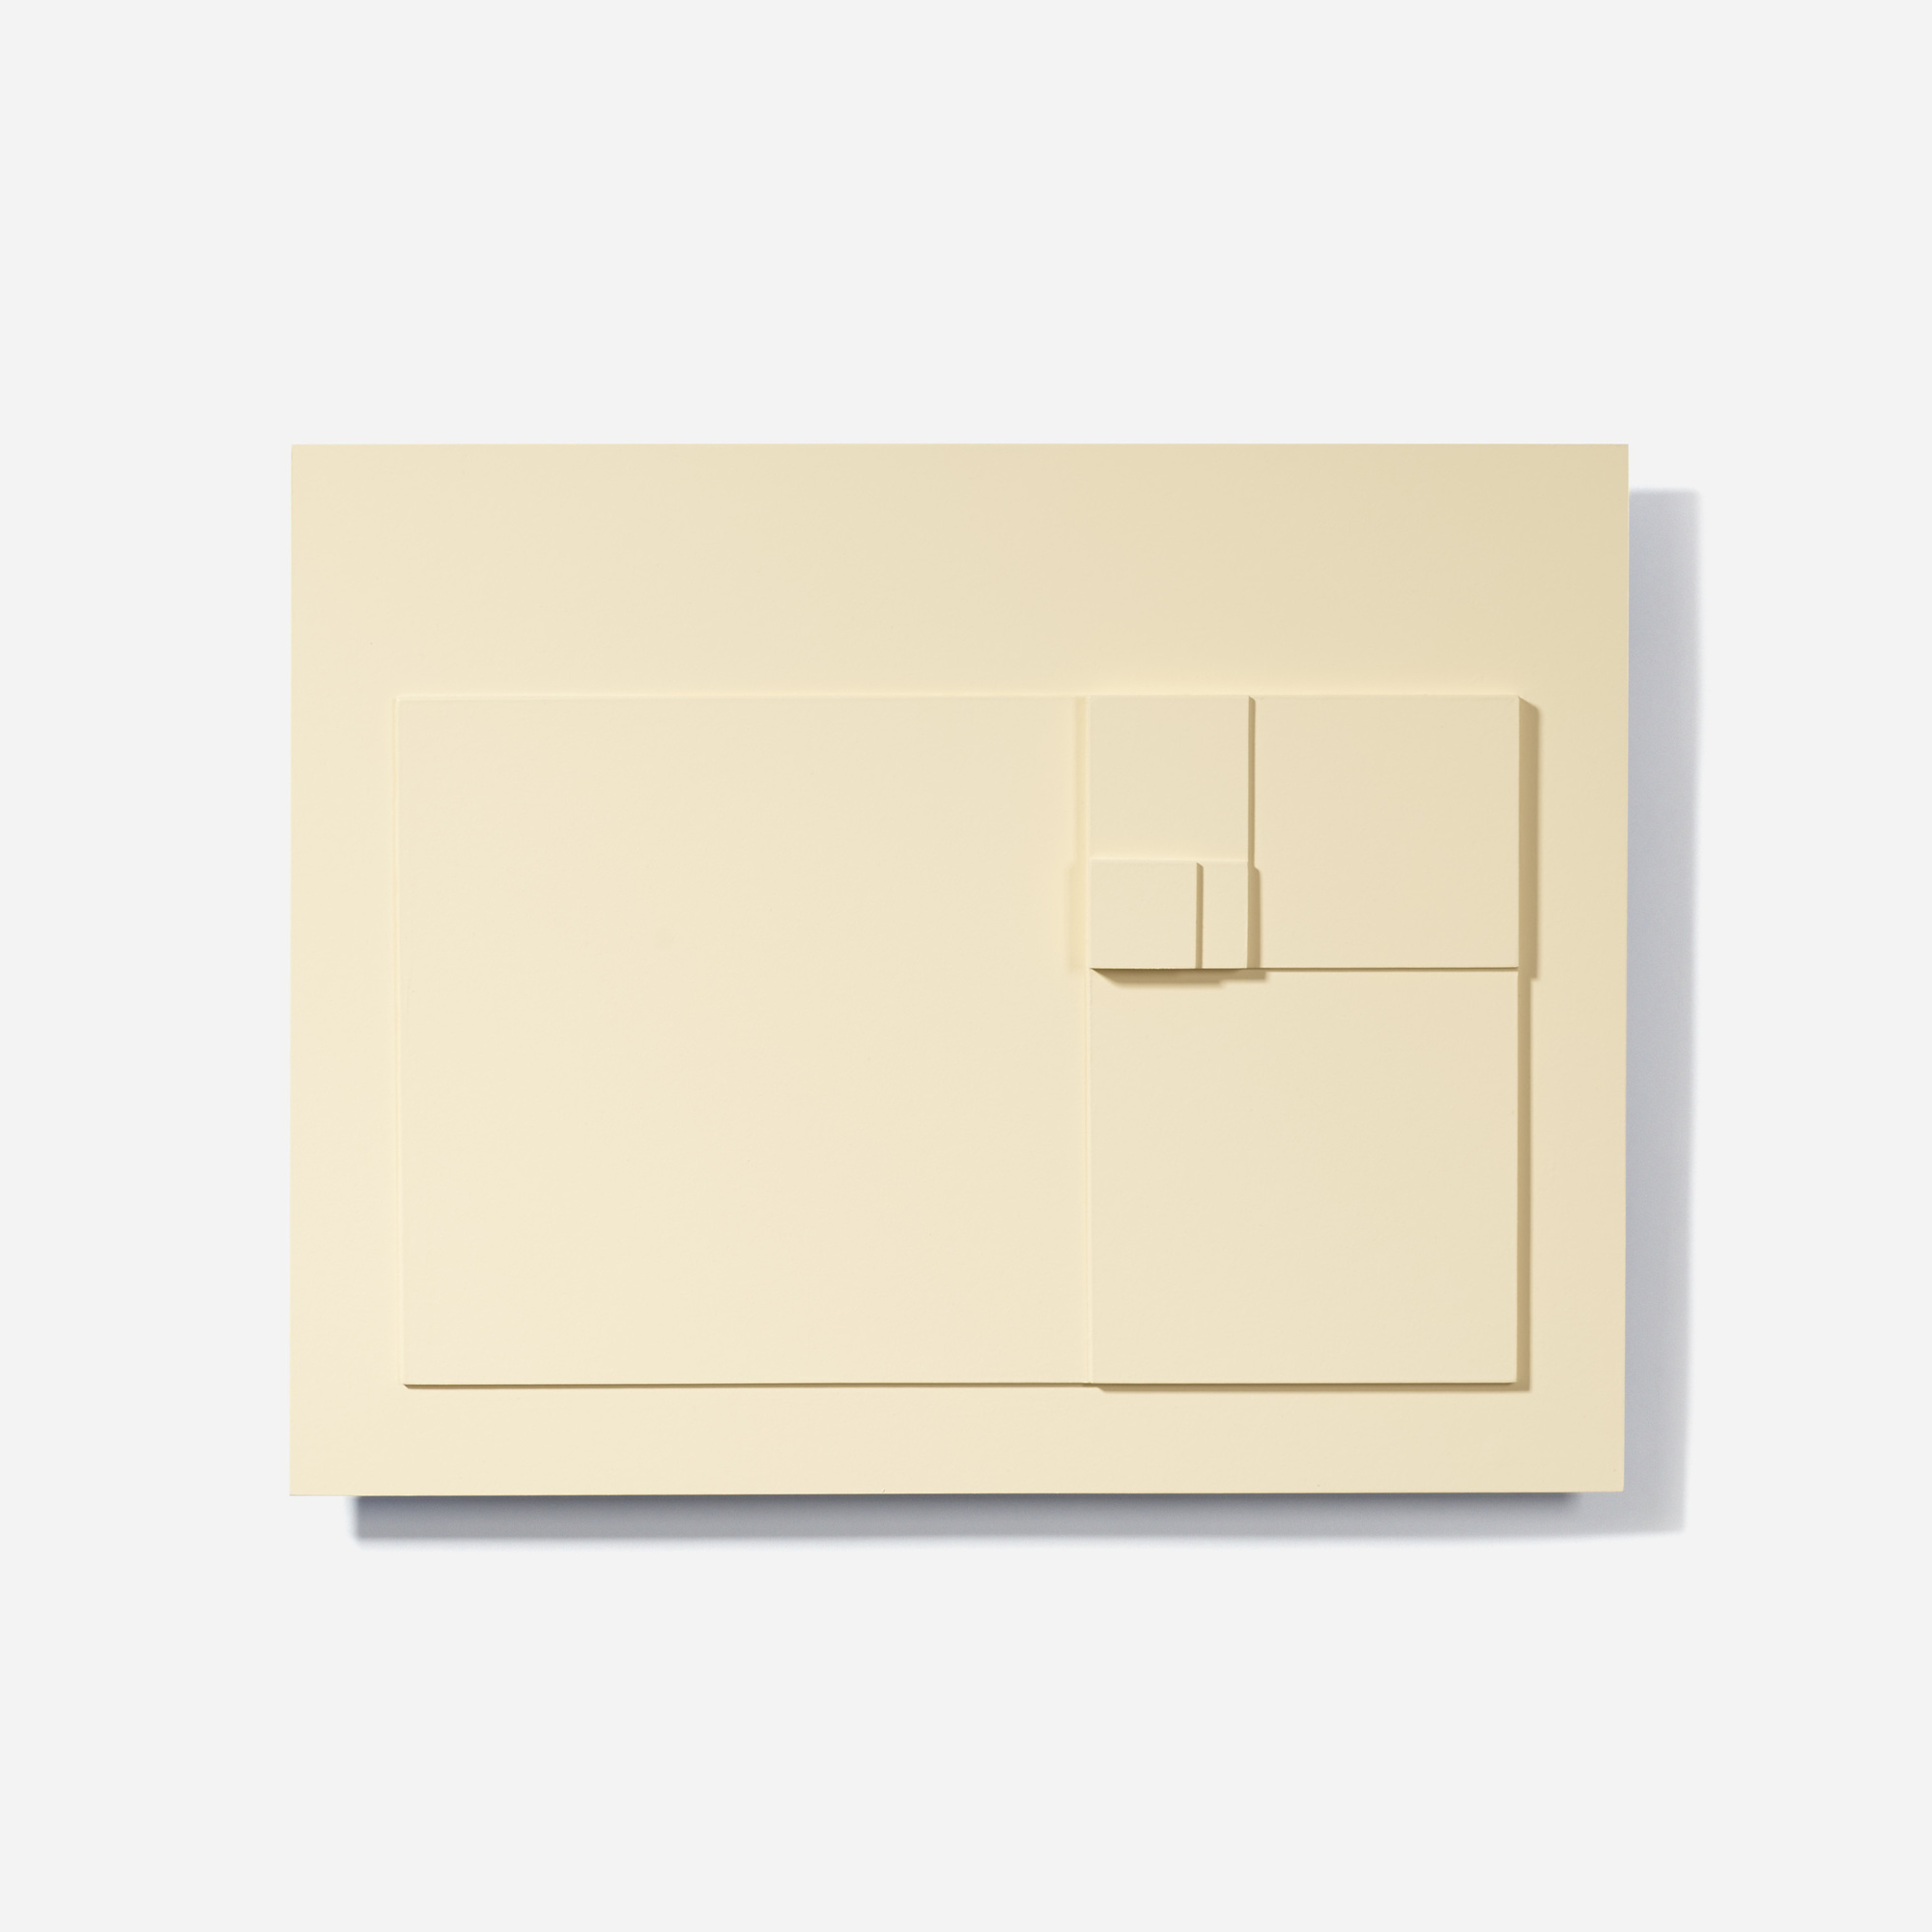 131: David Barr / Structurist Relief No. 343 (Reference to No. 20s) (1 of 3)